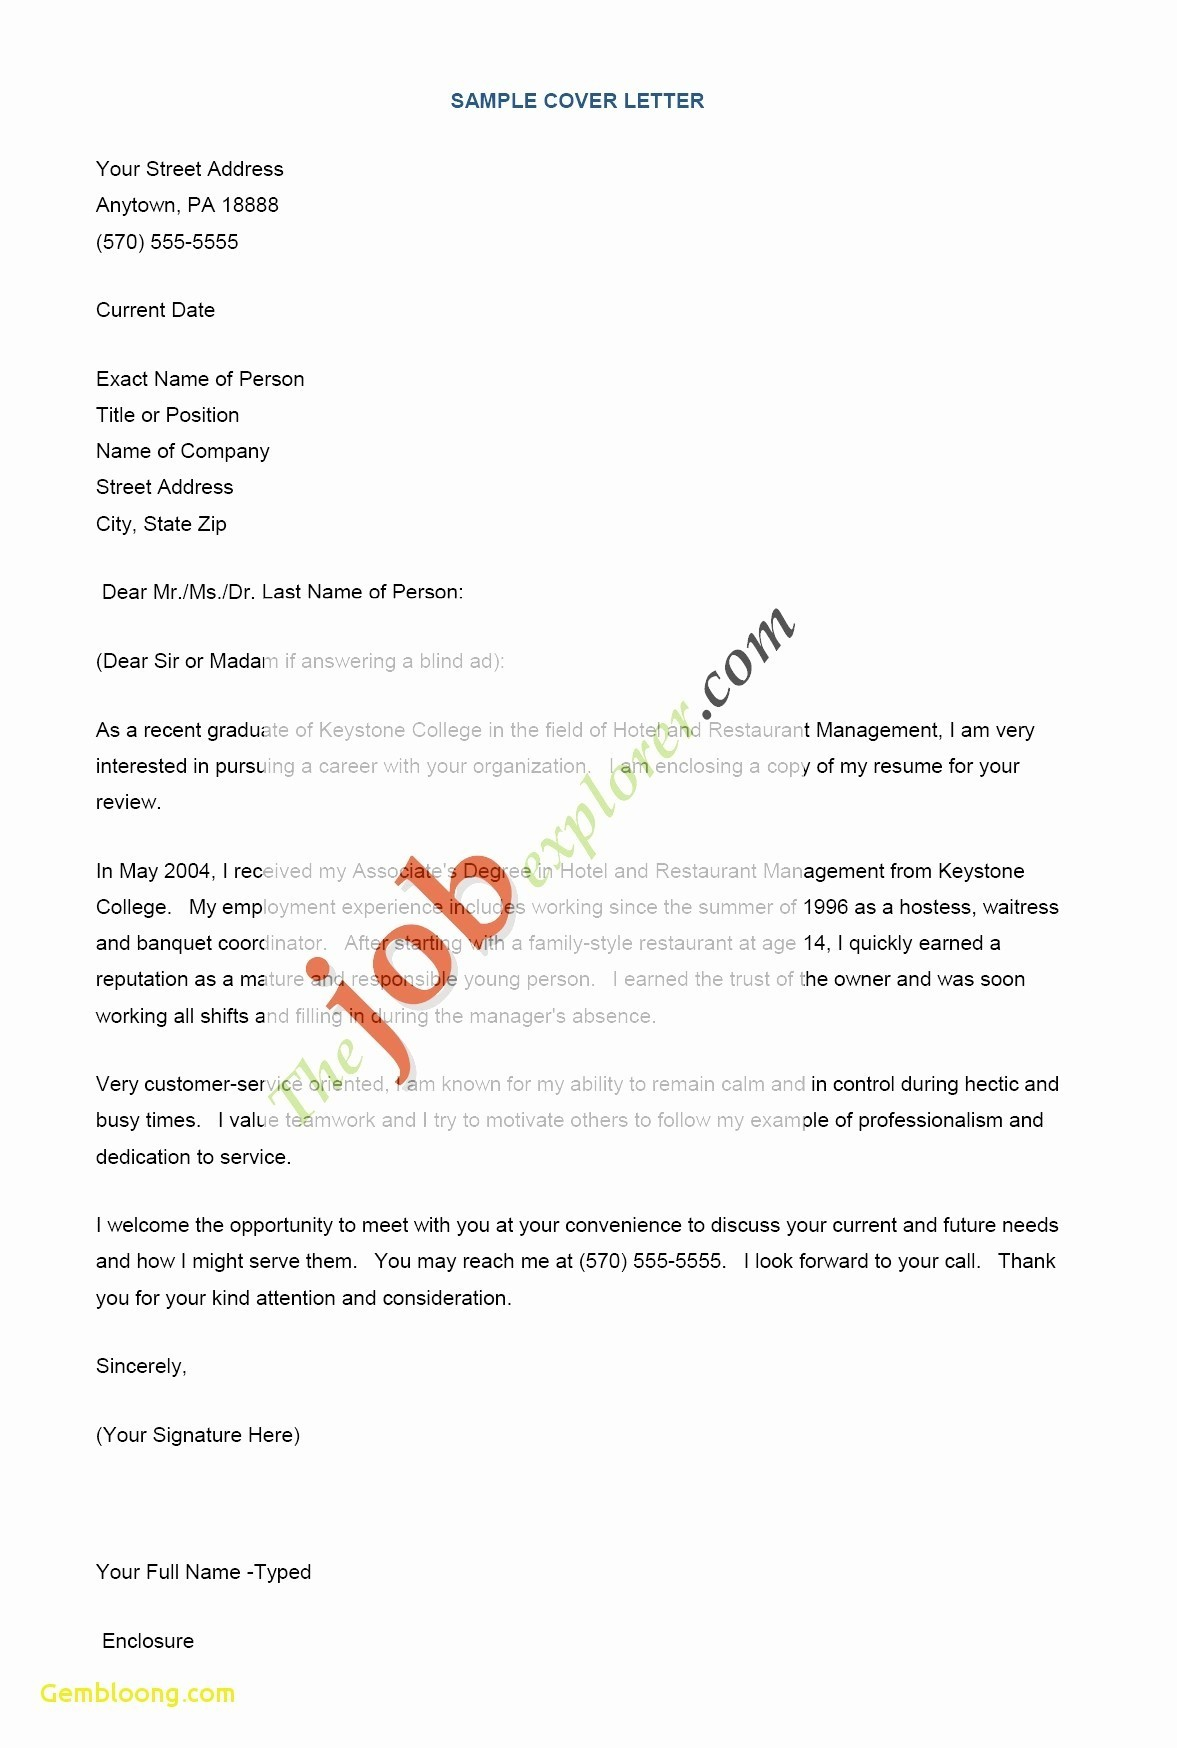 Resume Services Los Angeles - Examples Cover Letter for Resume Inspirational Resume Services